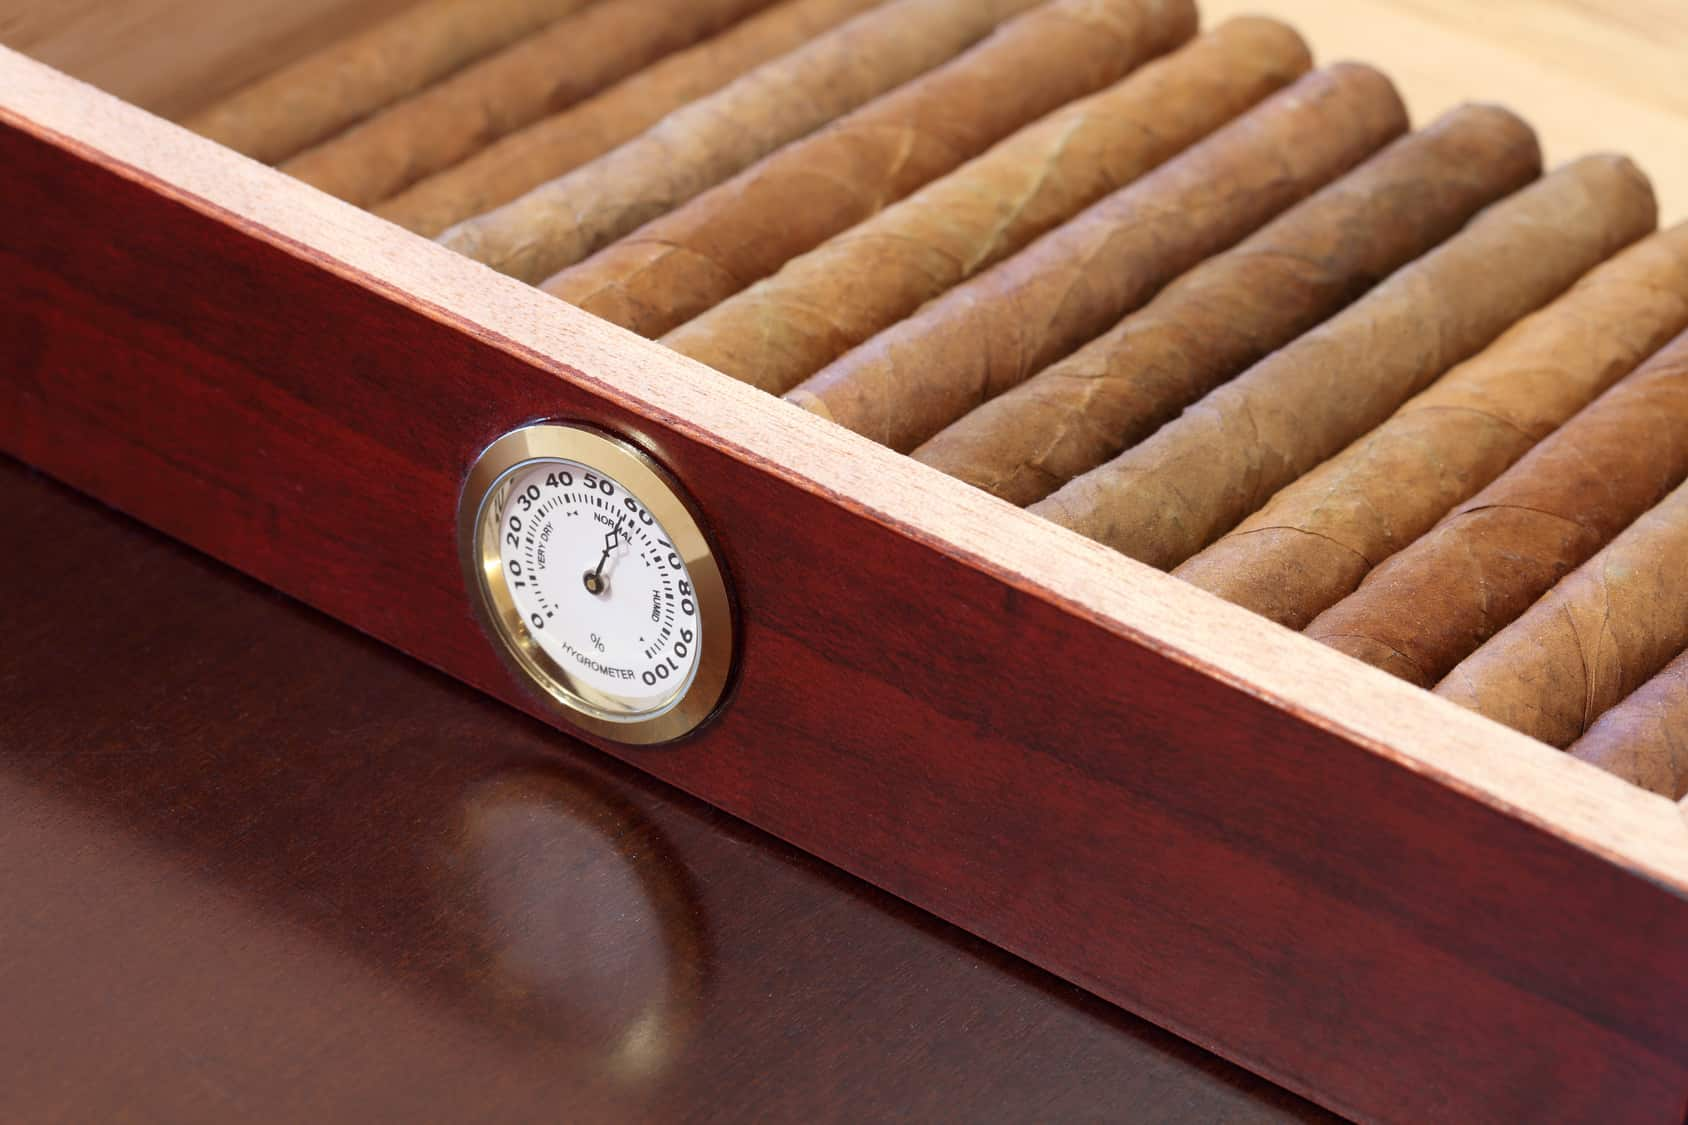 box with cigars